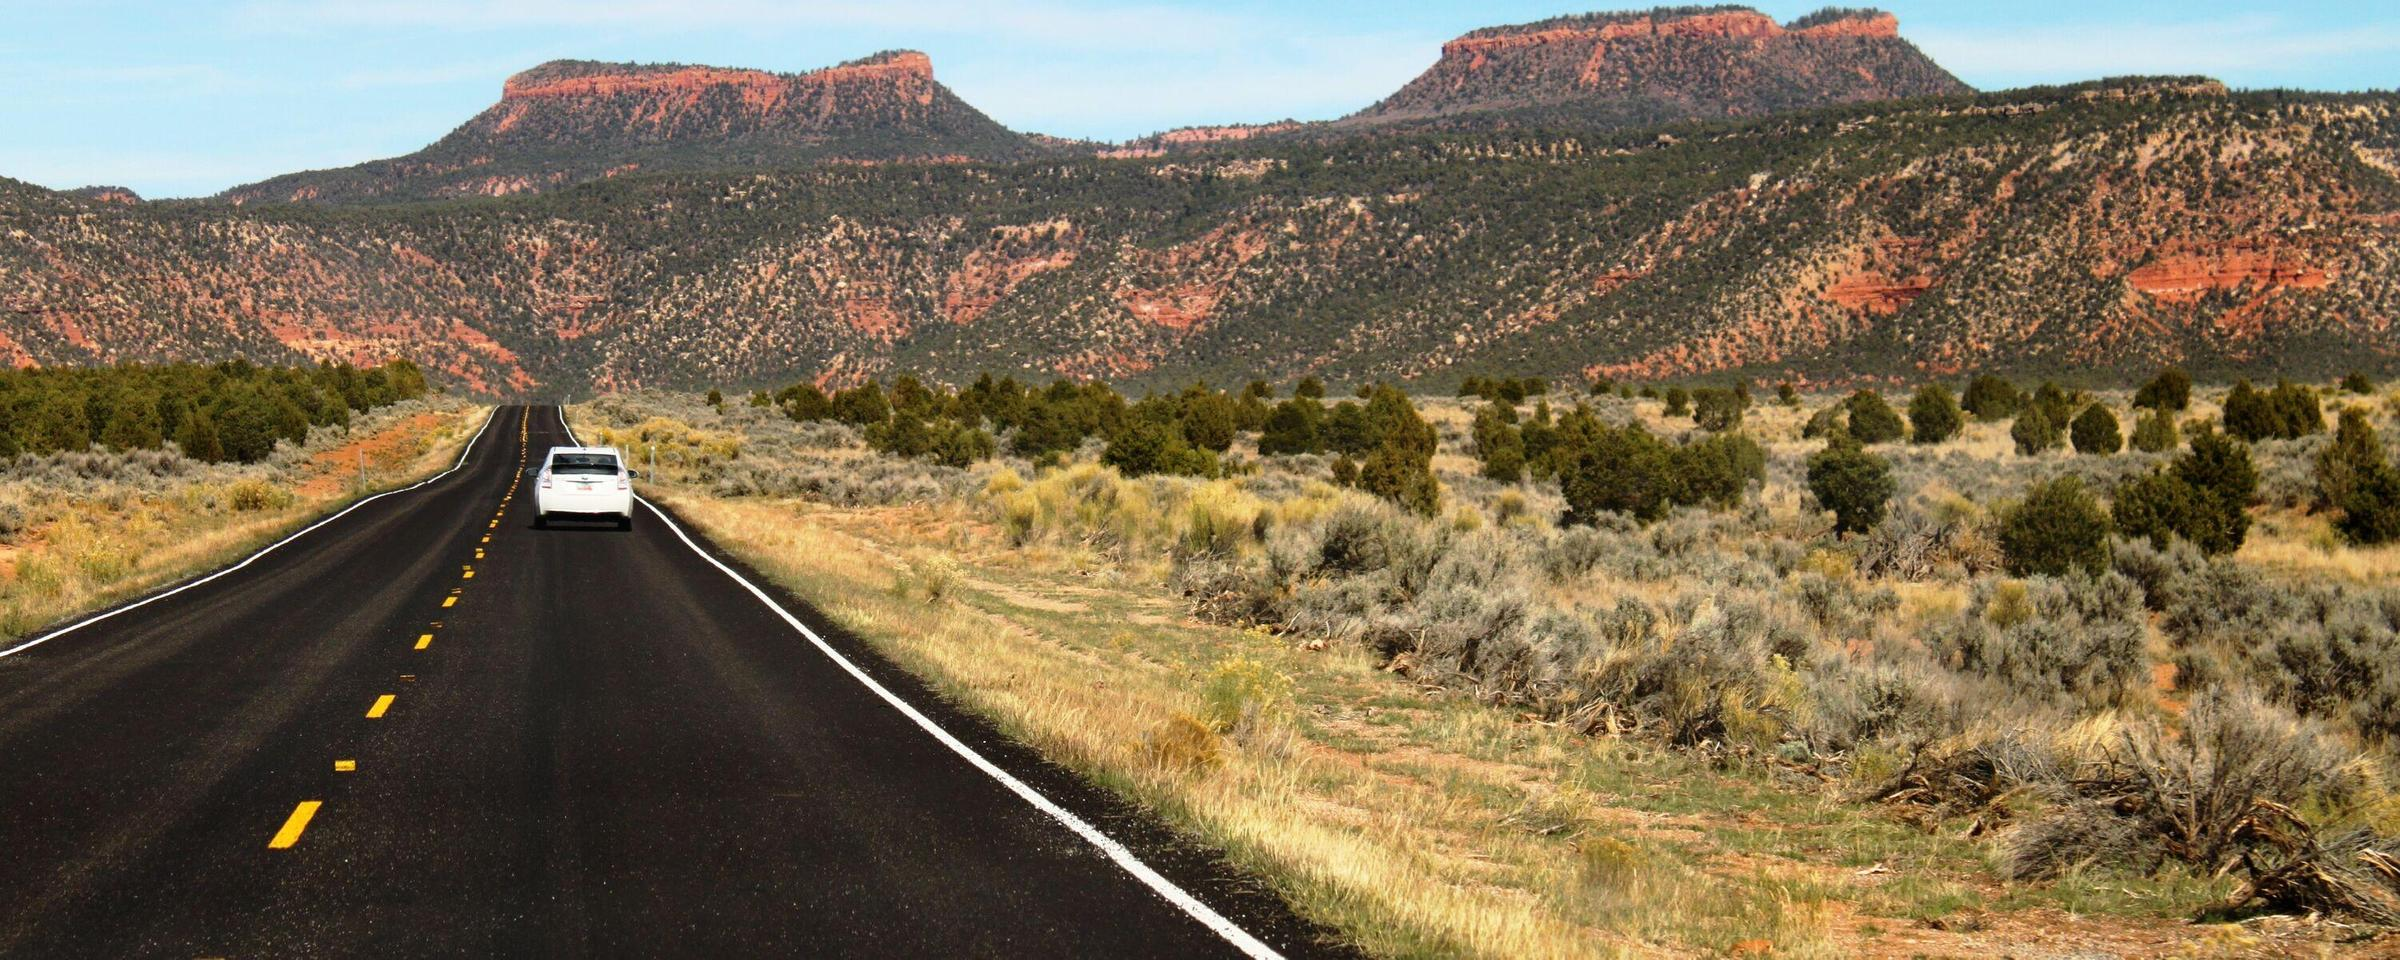 Bears Ears National Monument